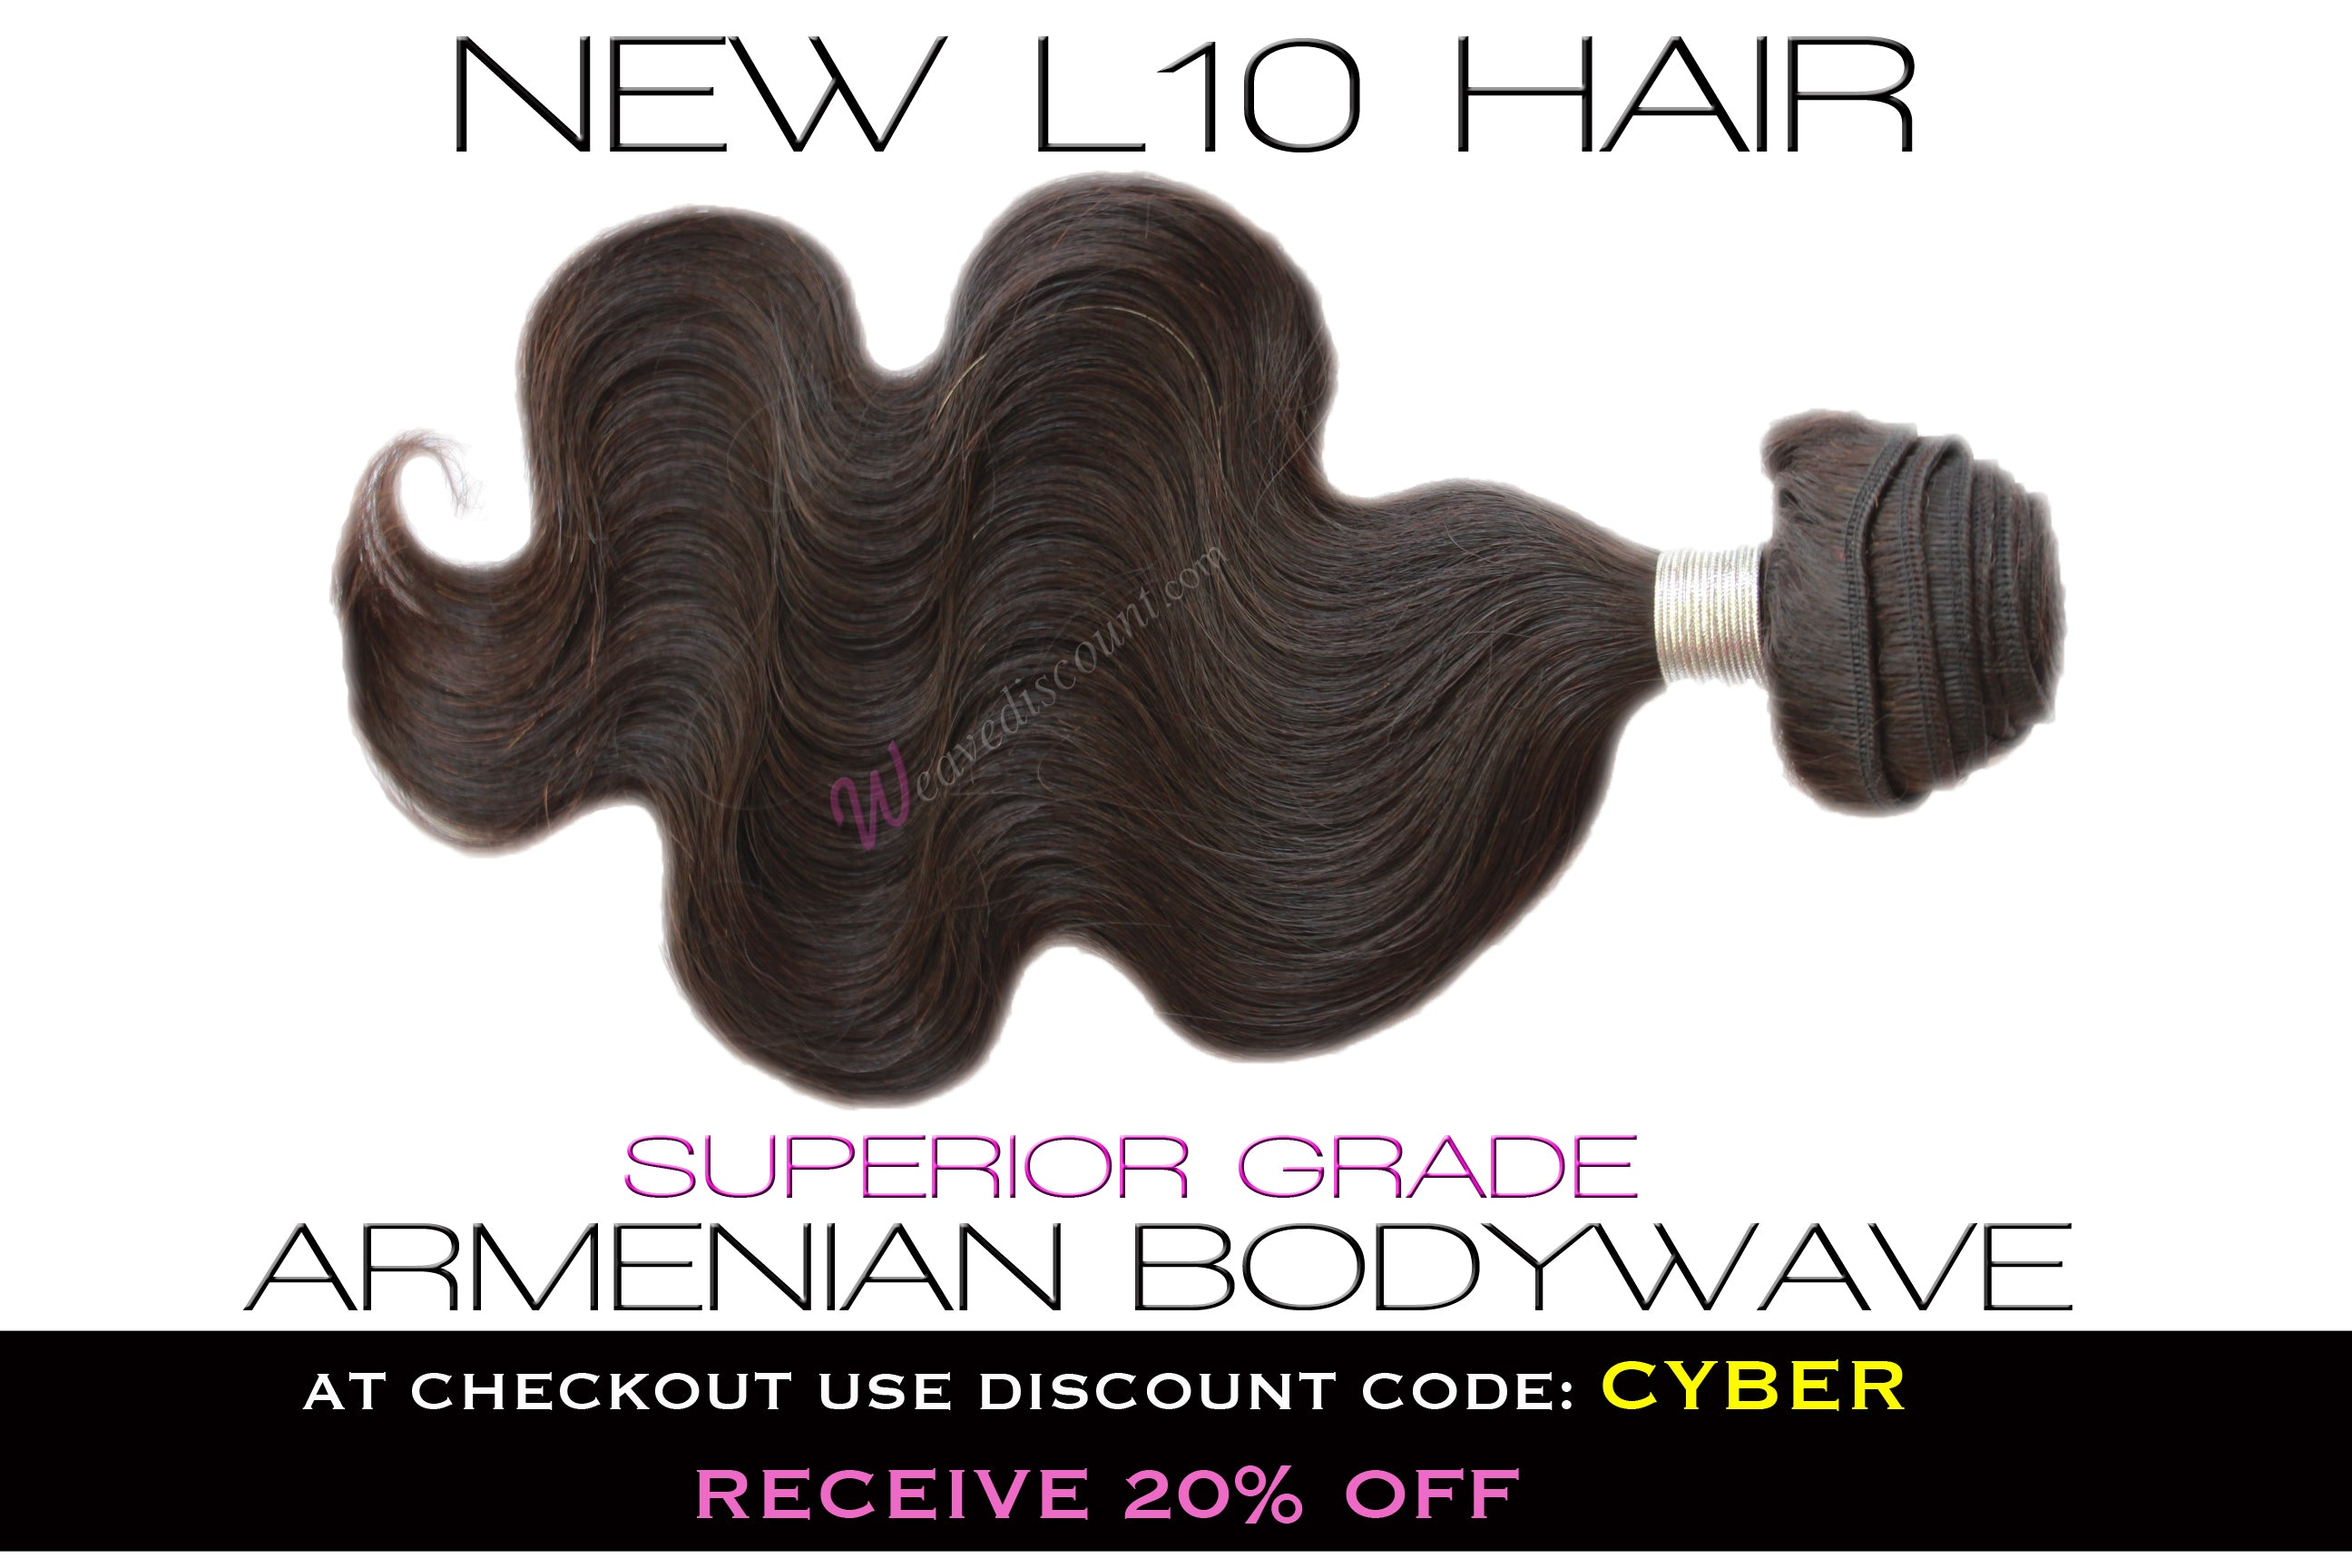 Armenian Bodywave Virgin Hair Extensions Weavediscount